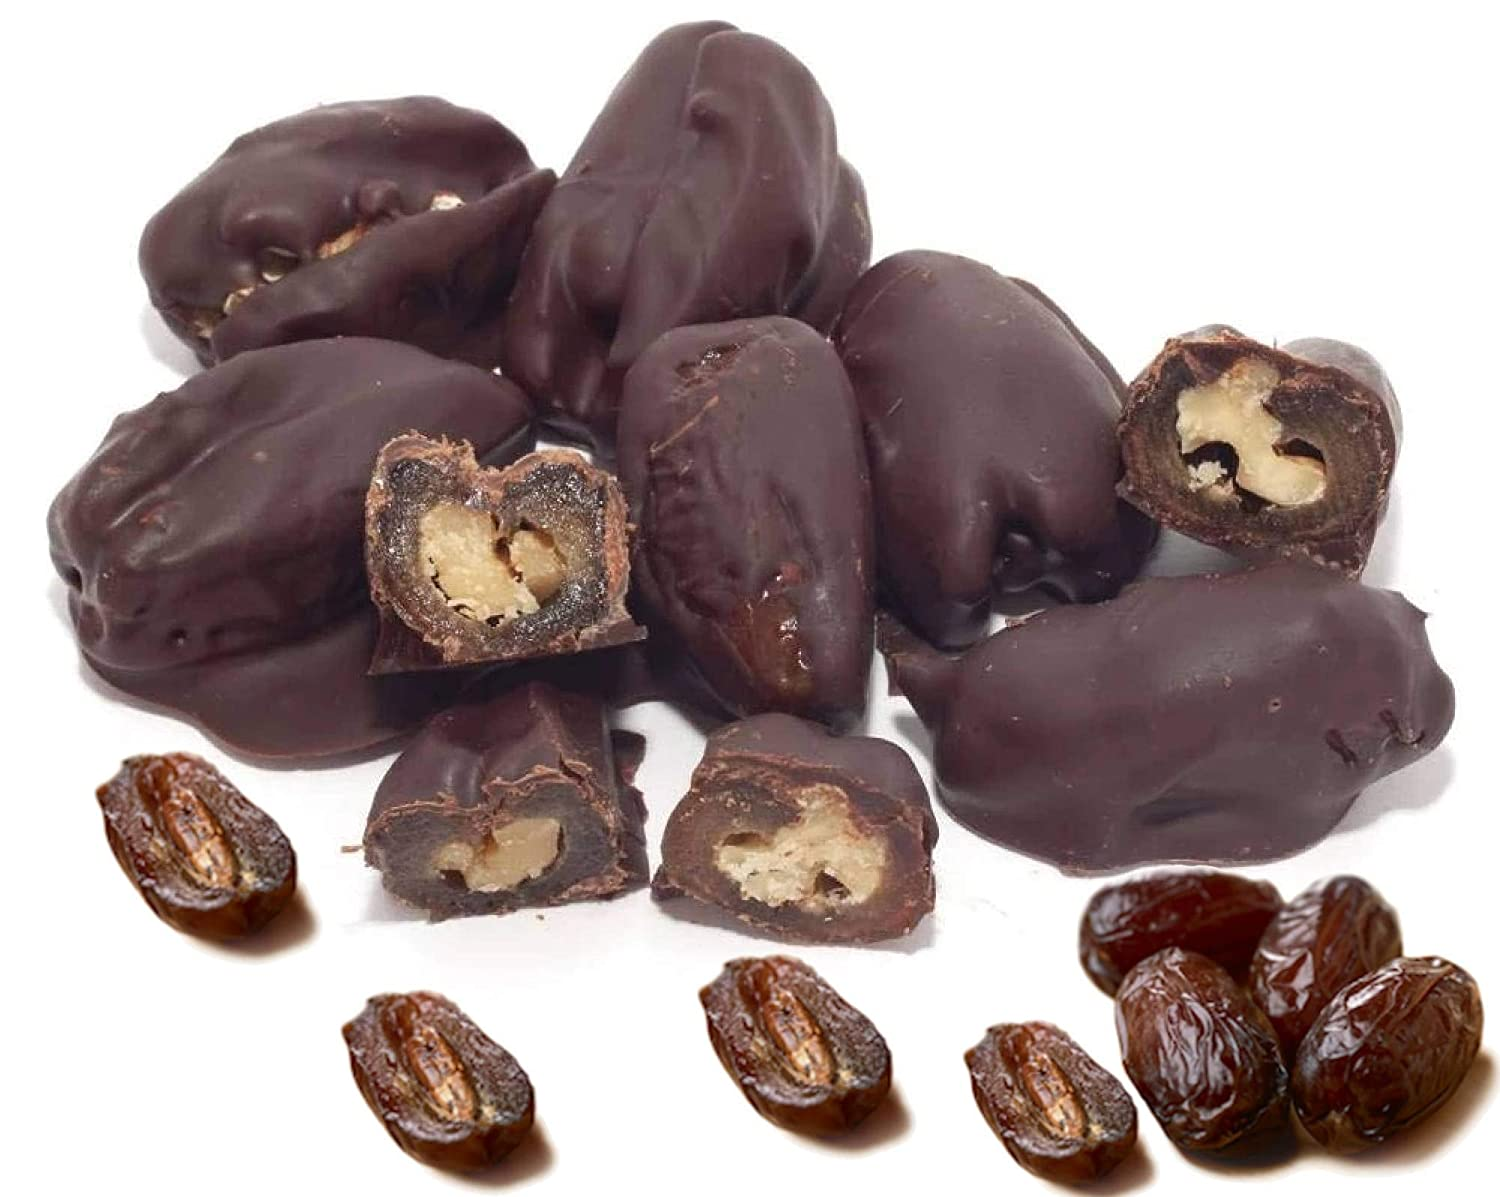 Andy Anand's Dark Chocolate covered Dates Sea 1 l El Paso Mall Max 44% OFF with Salt